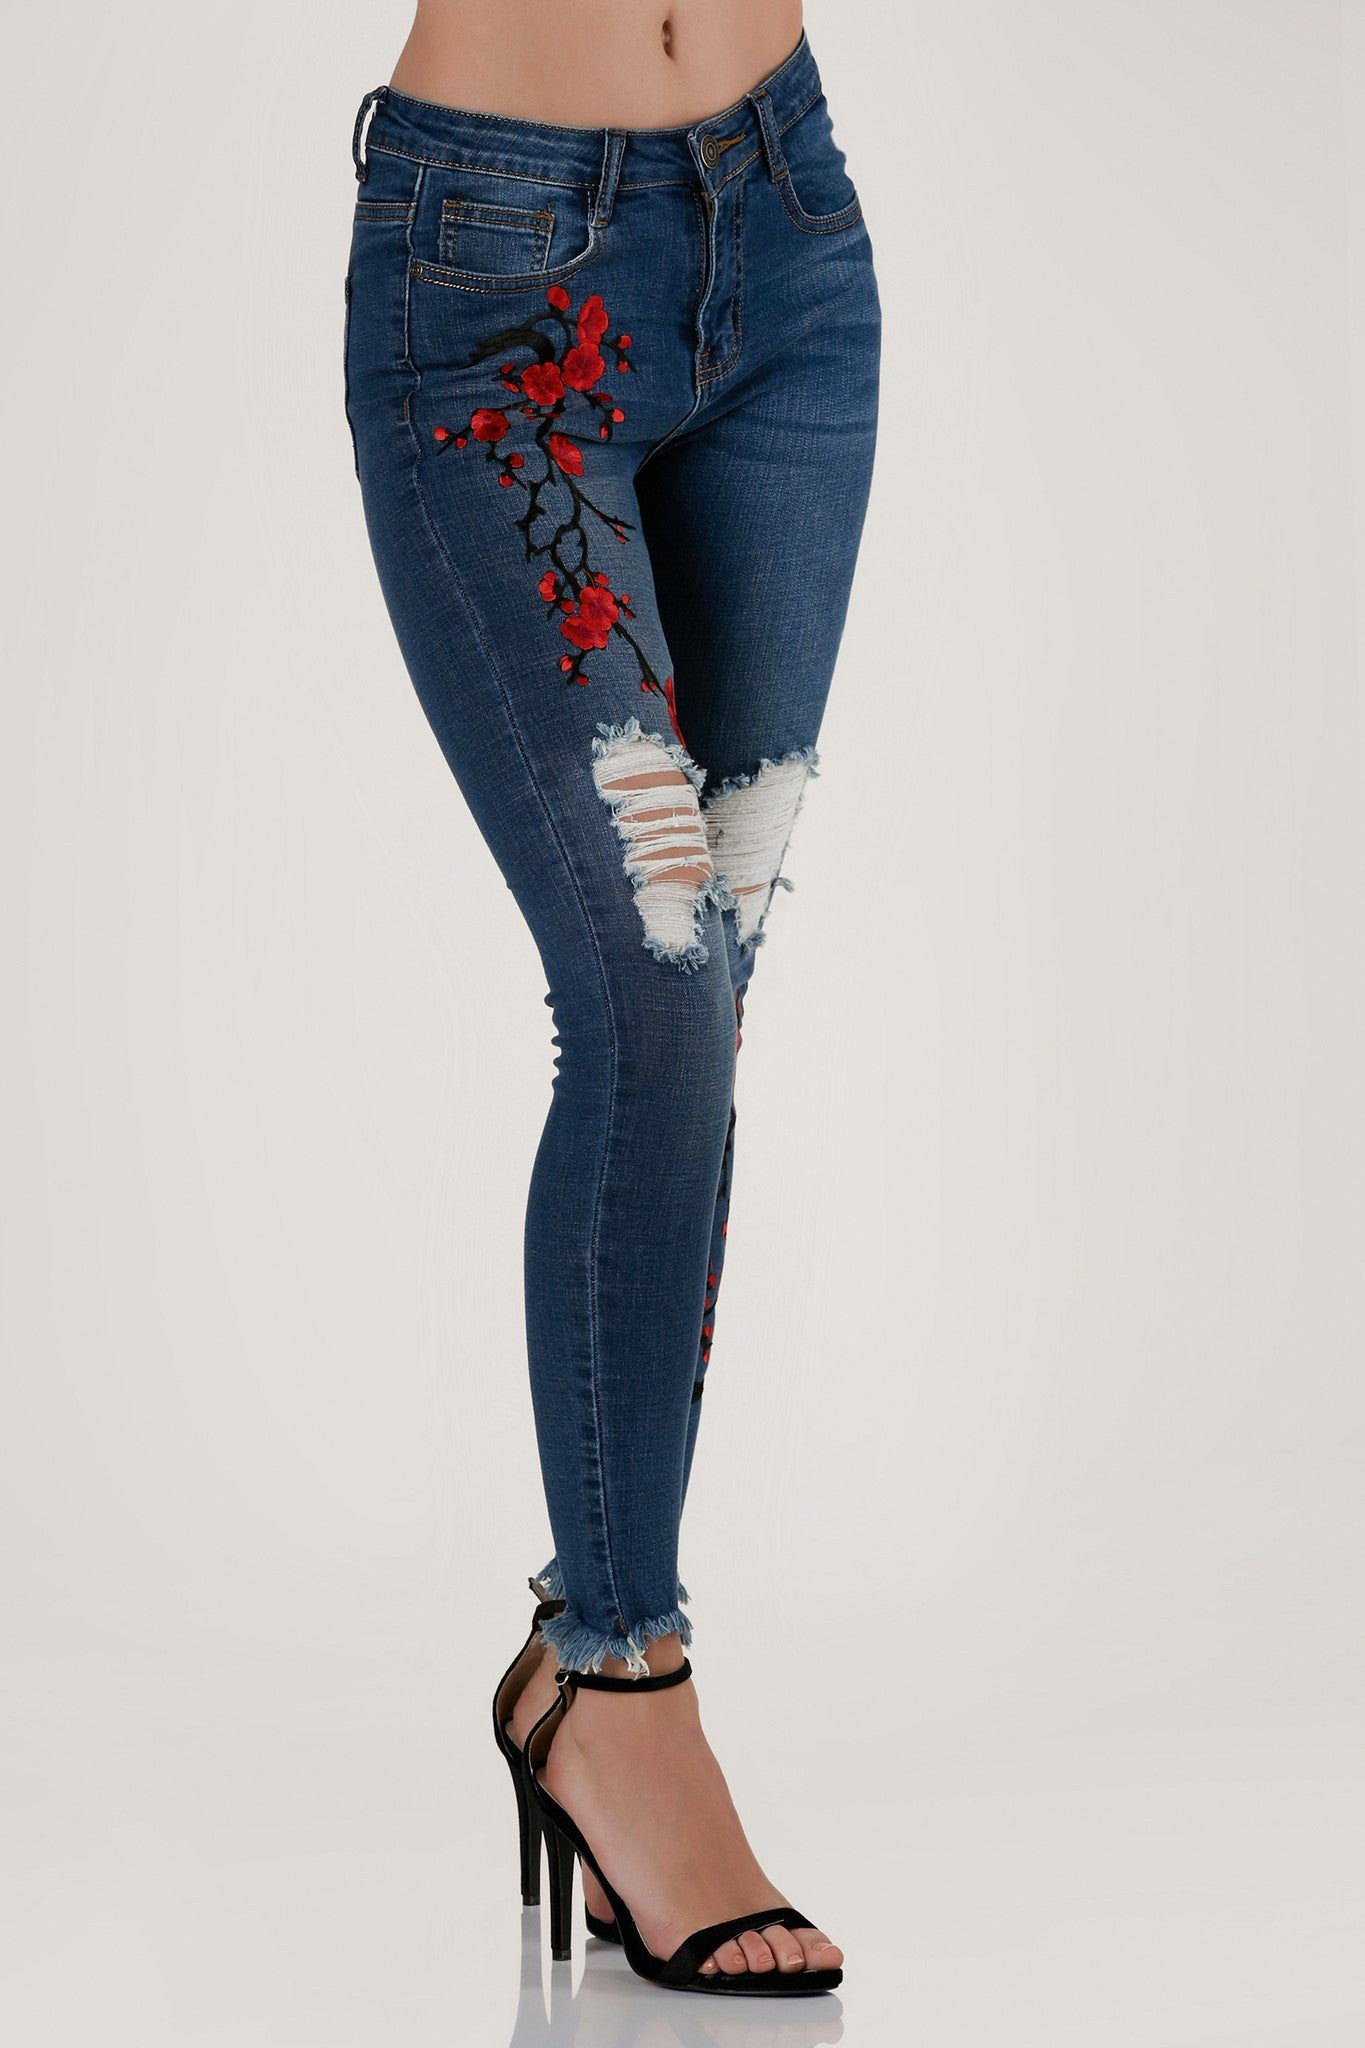 High rise skinnies with cherry blossom embroidery in front. Frayed uneven raw hem finish with 5 pocket design and button zip closure.